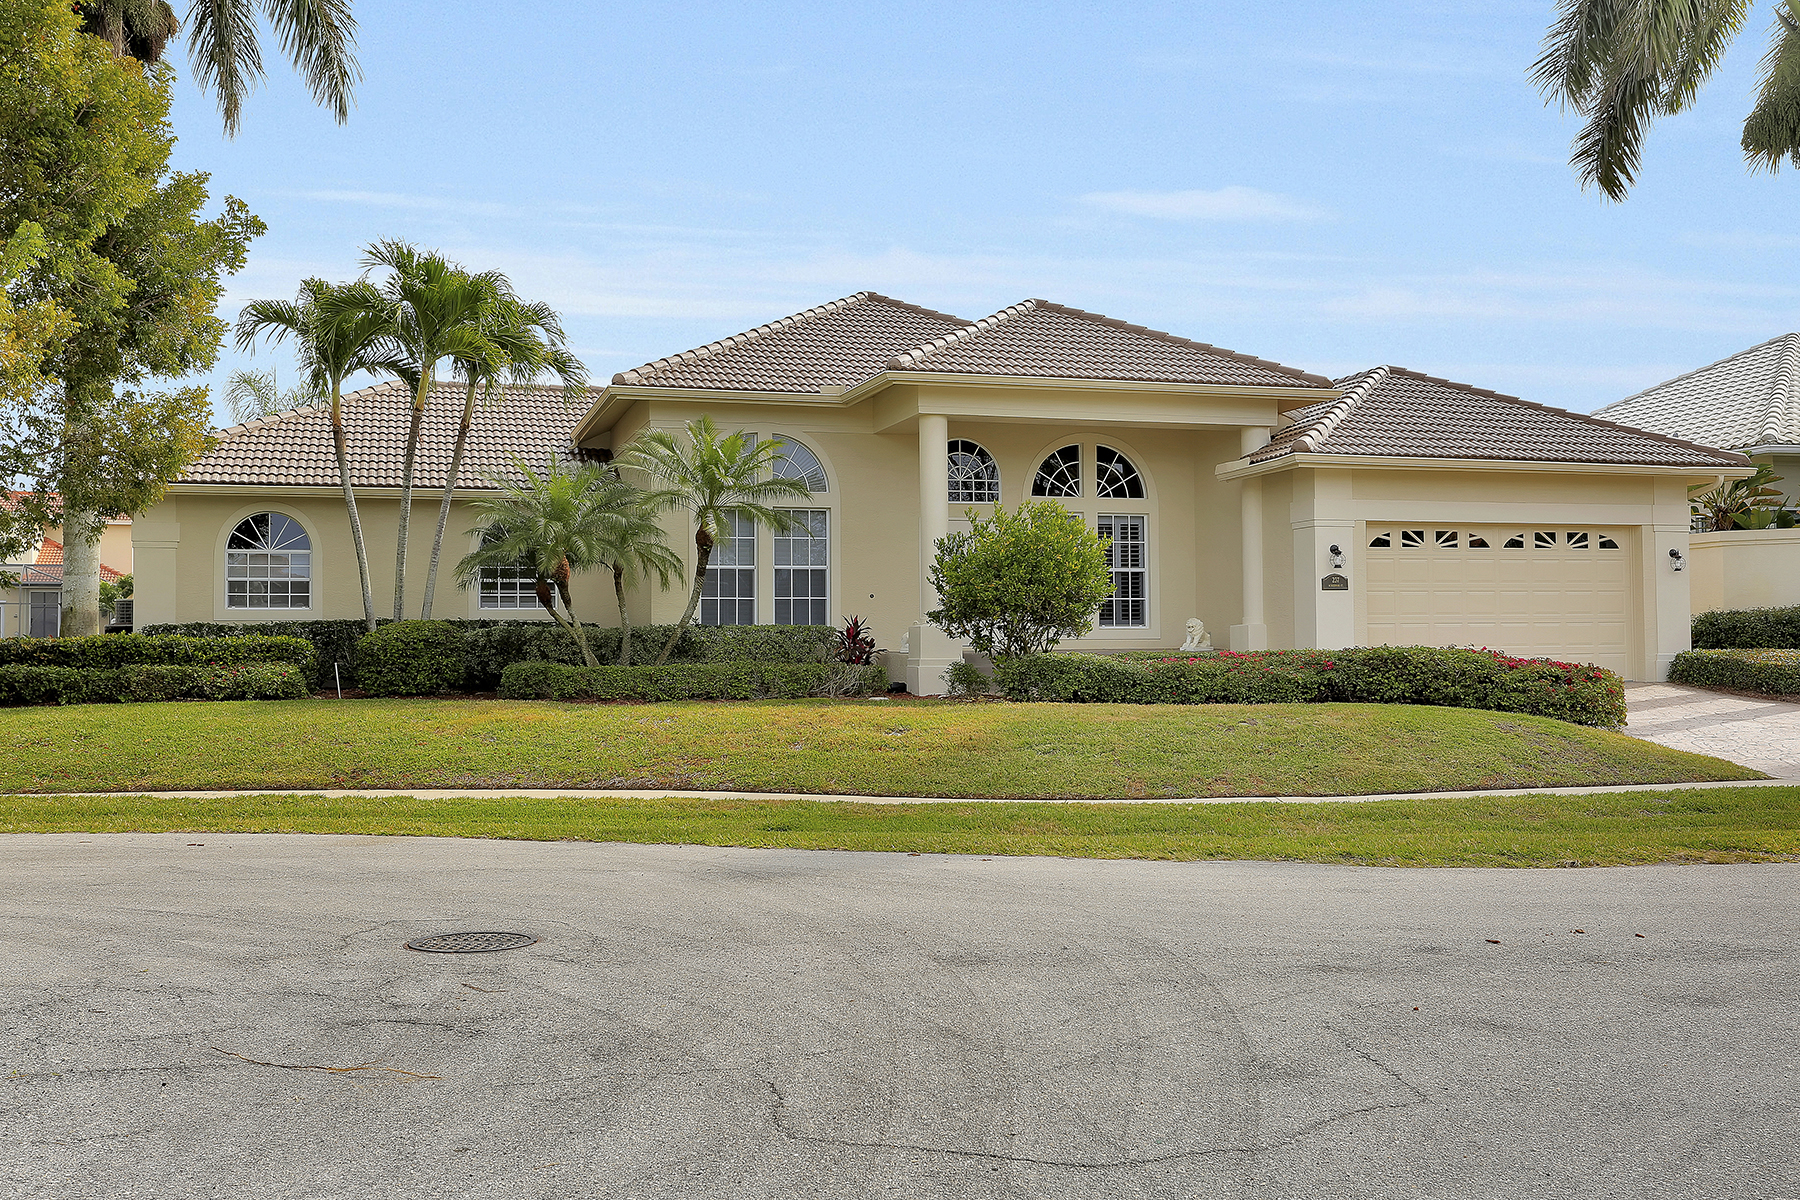 Single Family Home for Sale at Marco Island 237 Windbrook Ct NW, Marco Island, Florida 34145 United States